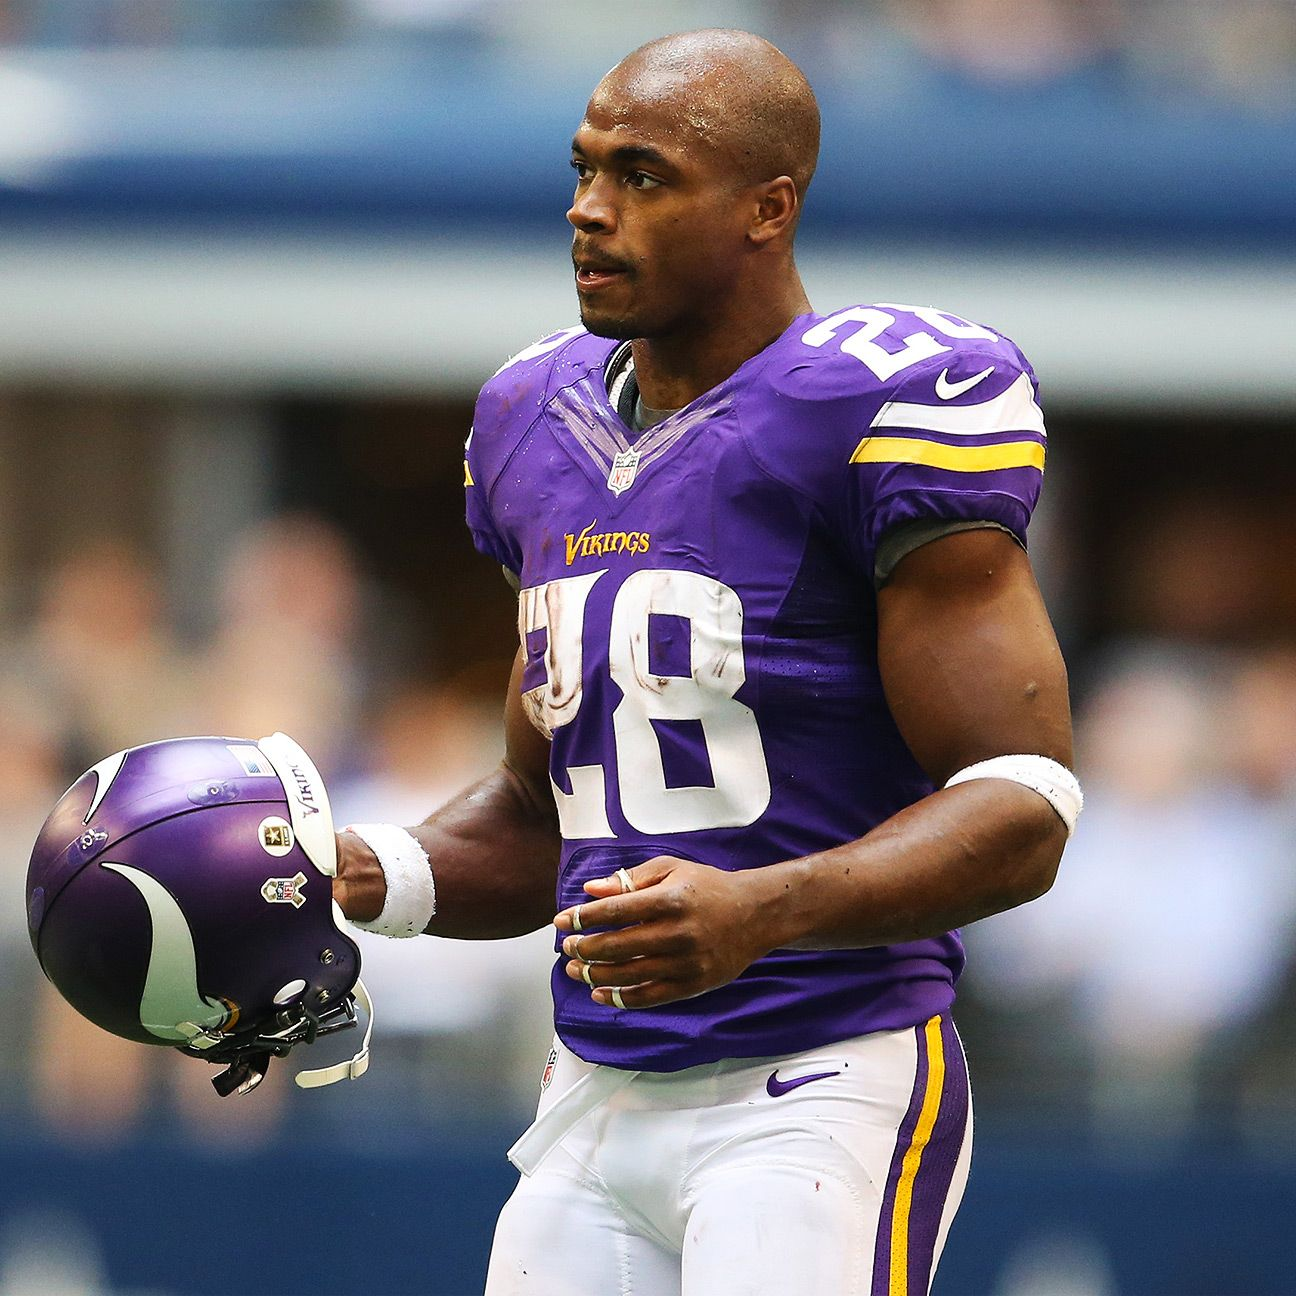 Adrian peterson barred from all minnesota vikings activities